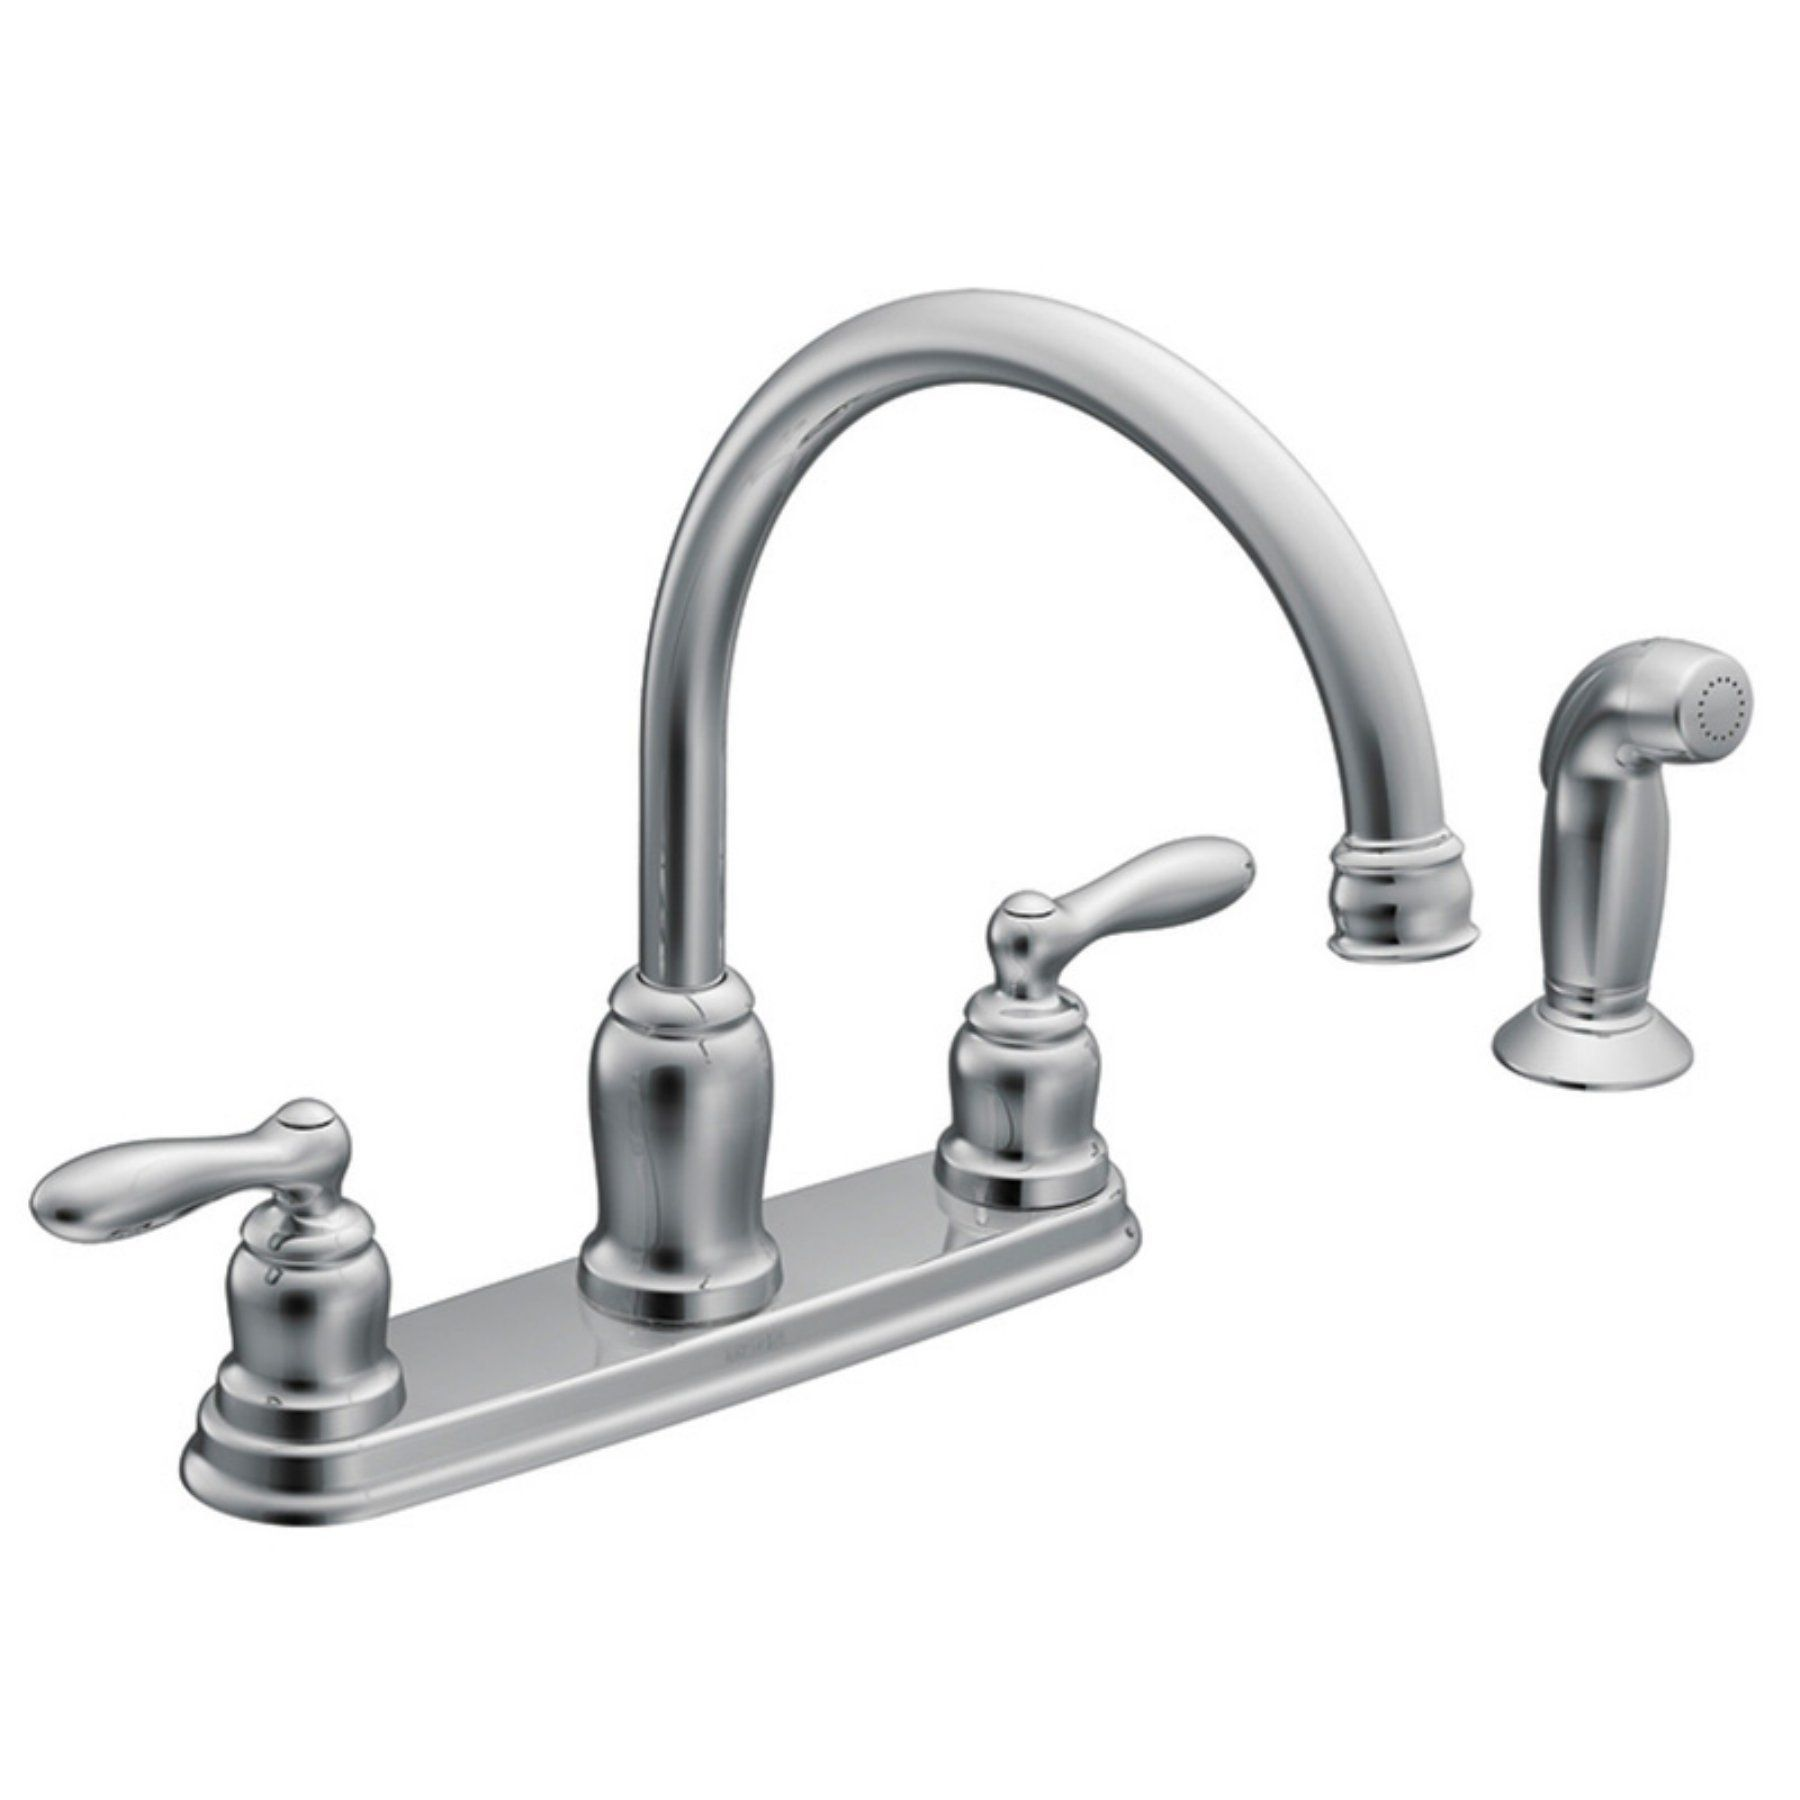 Moen Ca87888 Double Handle High Arc Kitchen Faucet With Side Spray